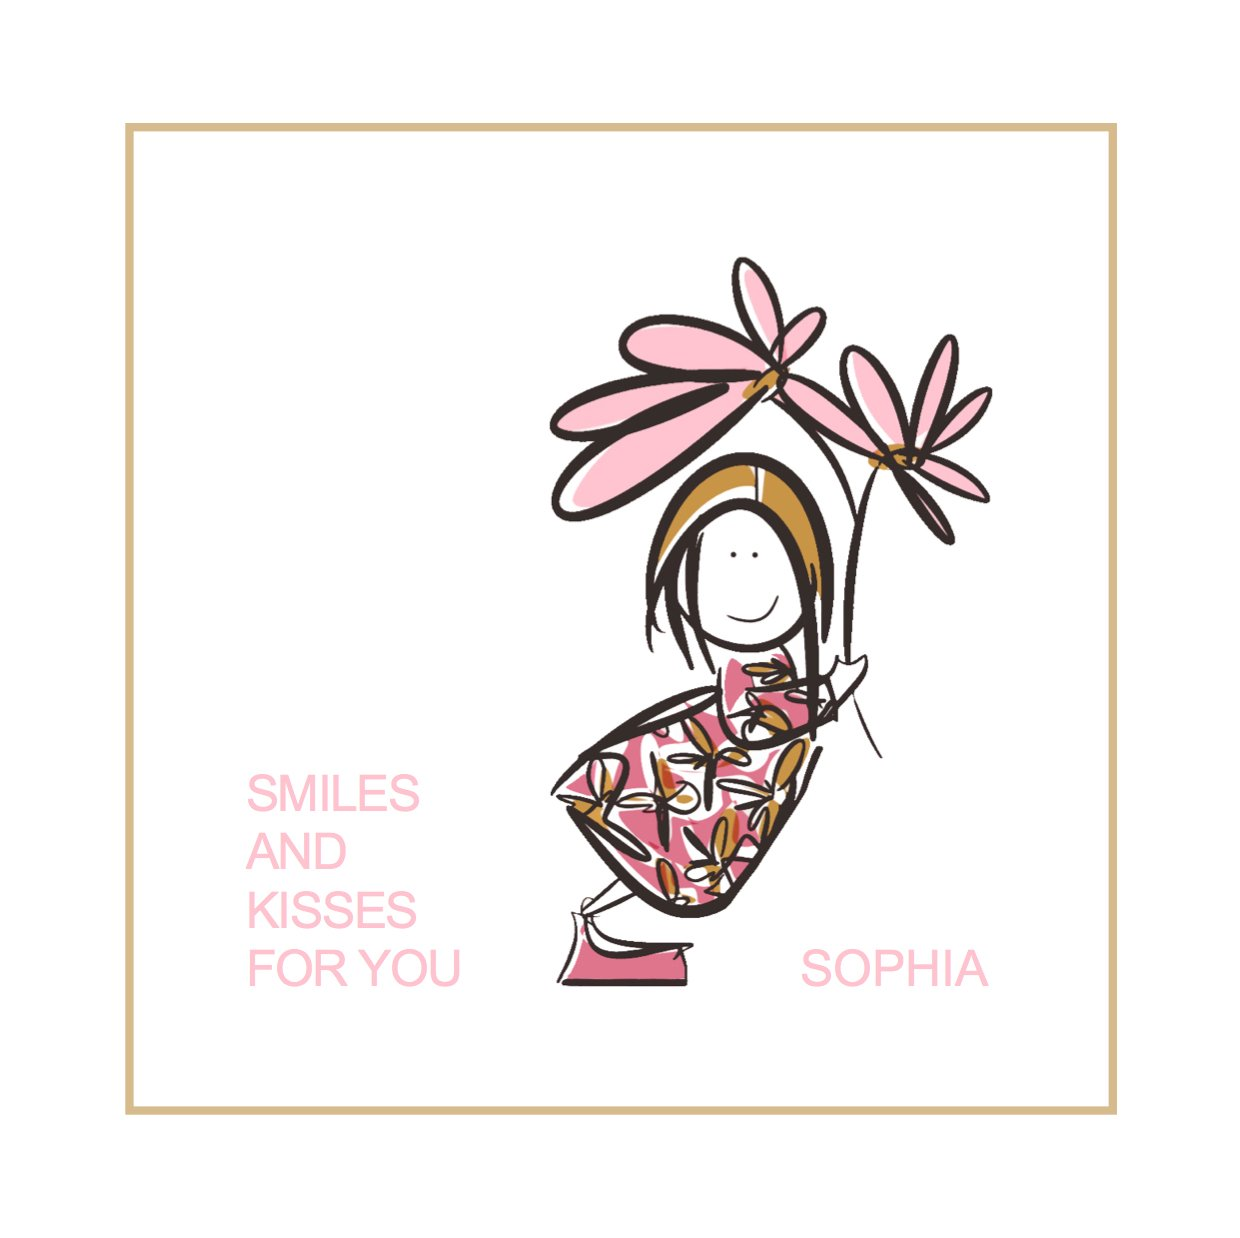 personalised smile print girl illustration